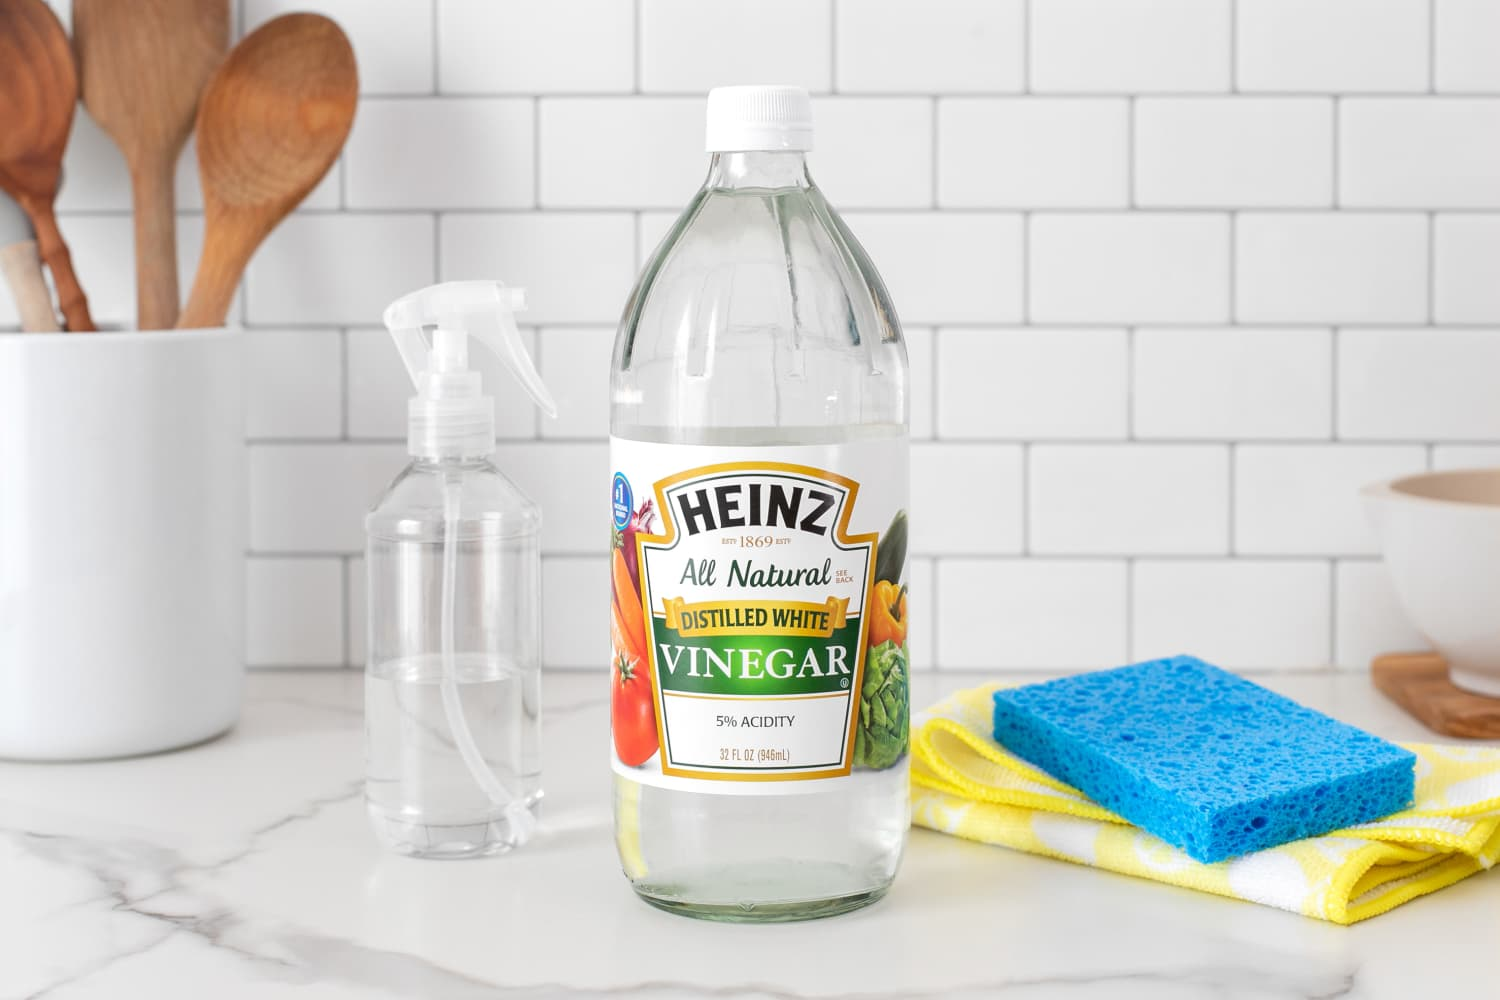 The Very First Thing Everyone Should Do with a New Bottle of Vinegar